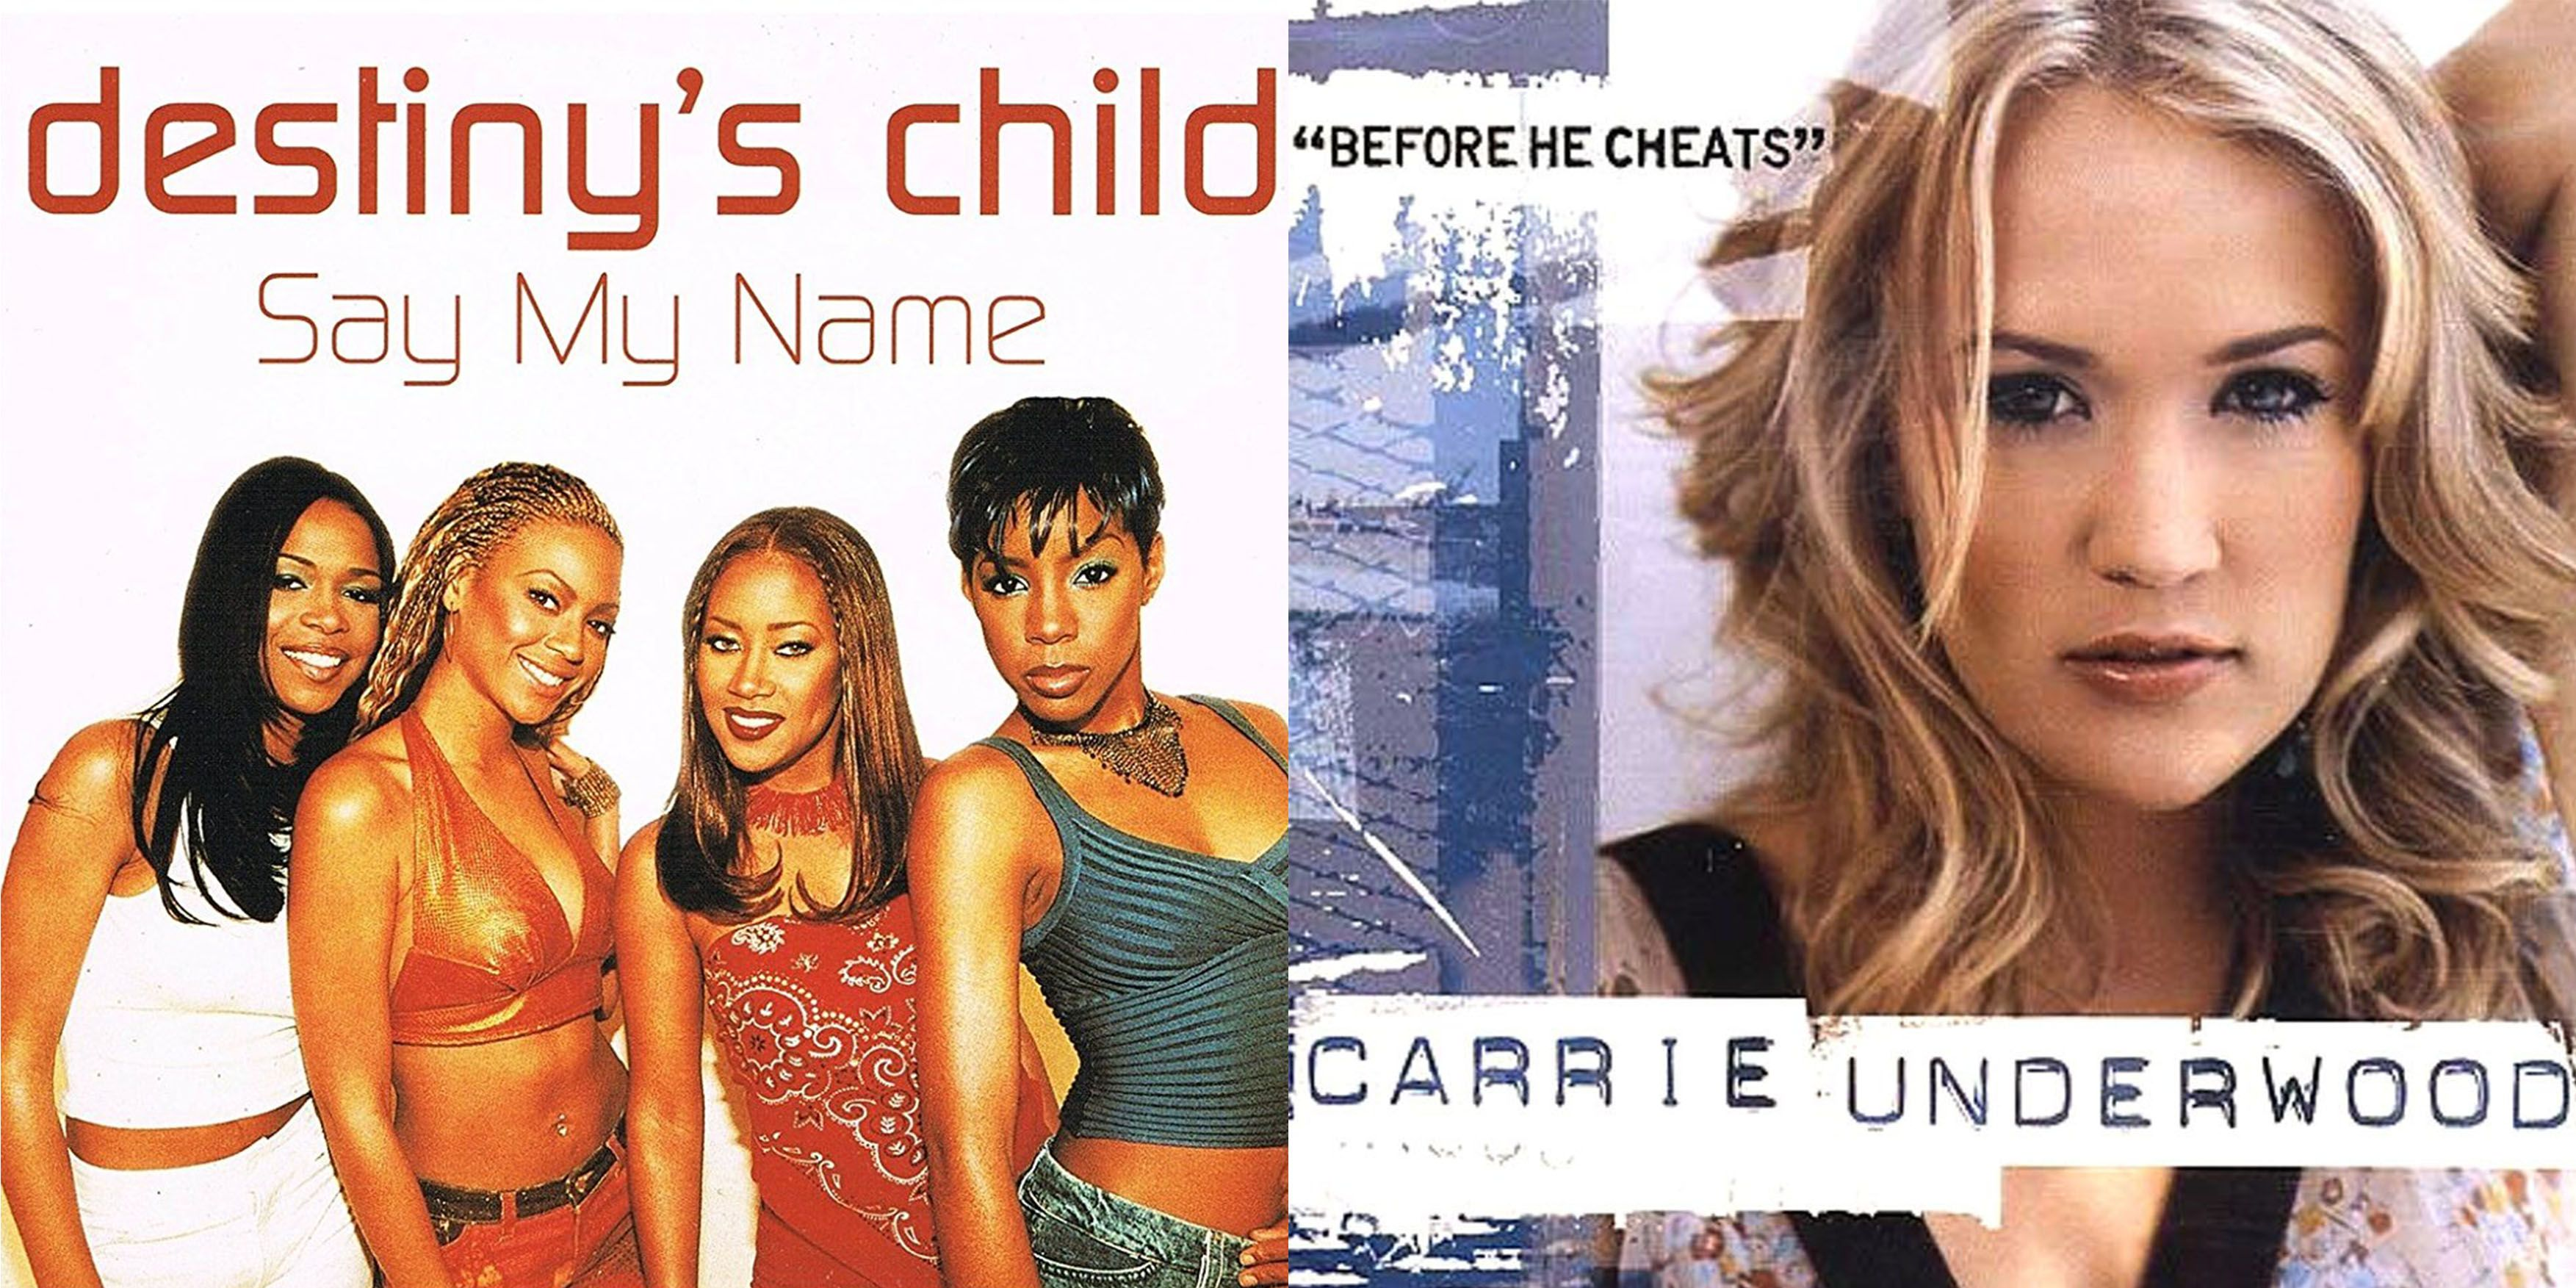 18 Best Songs About Cheating - Music to Listen to If You've